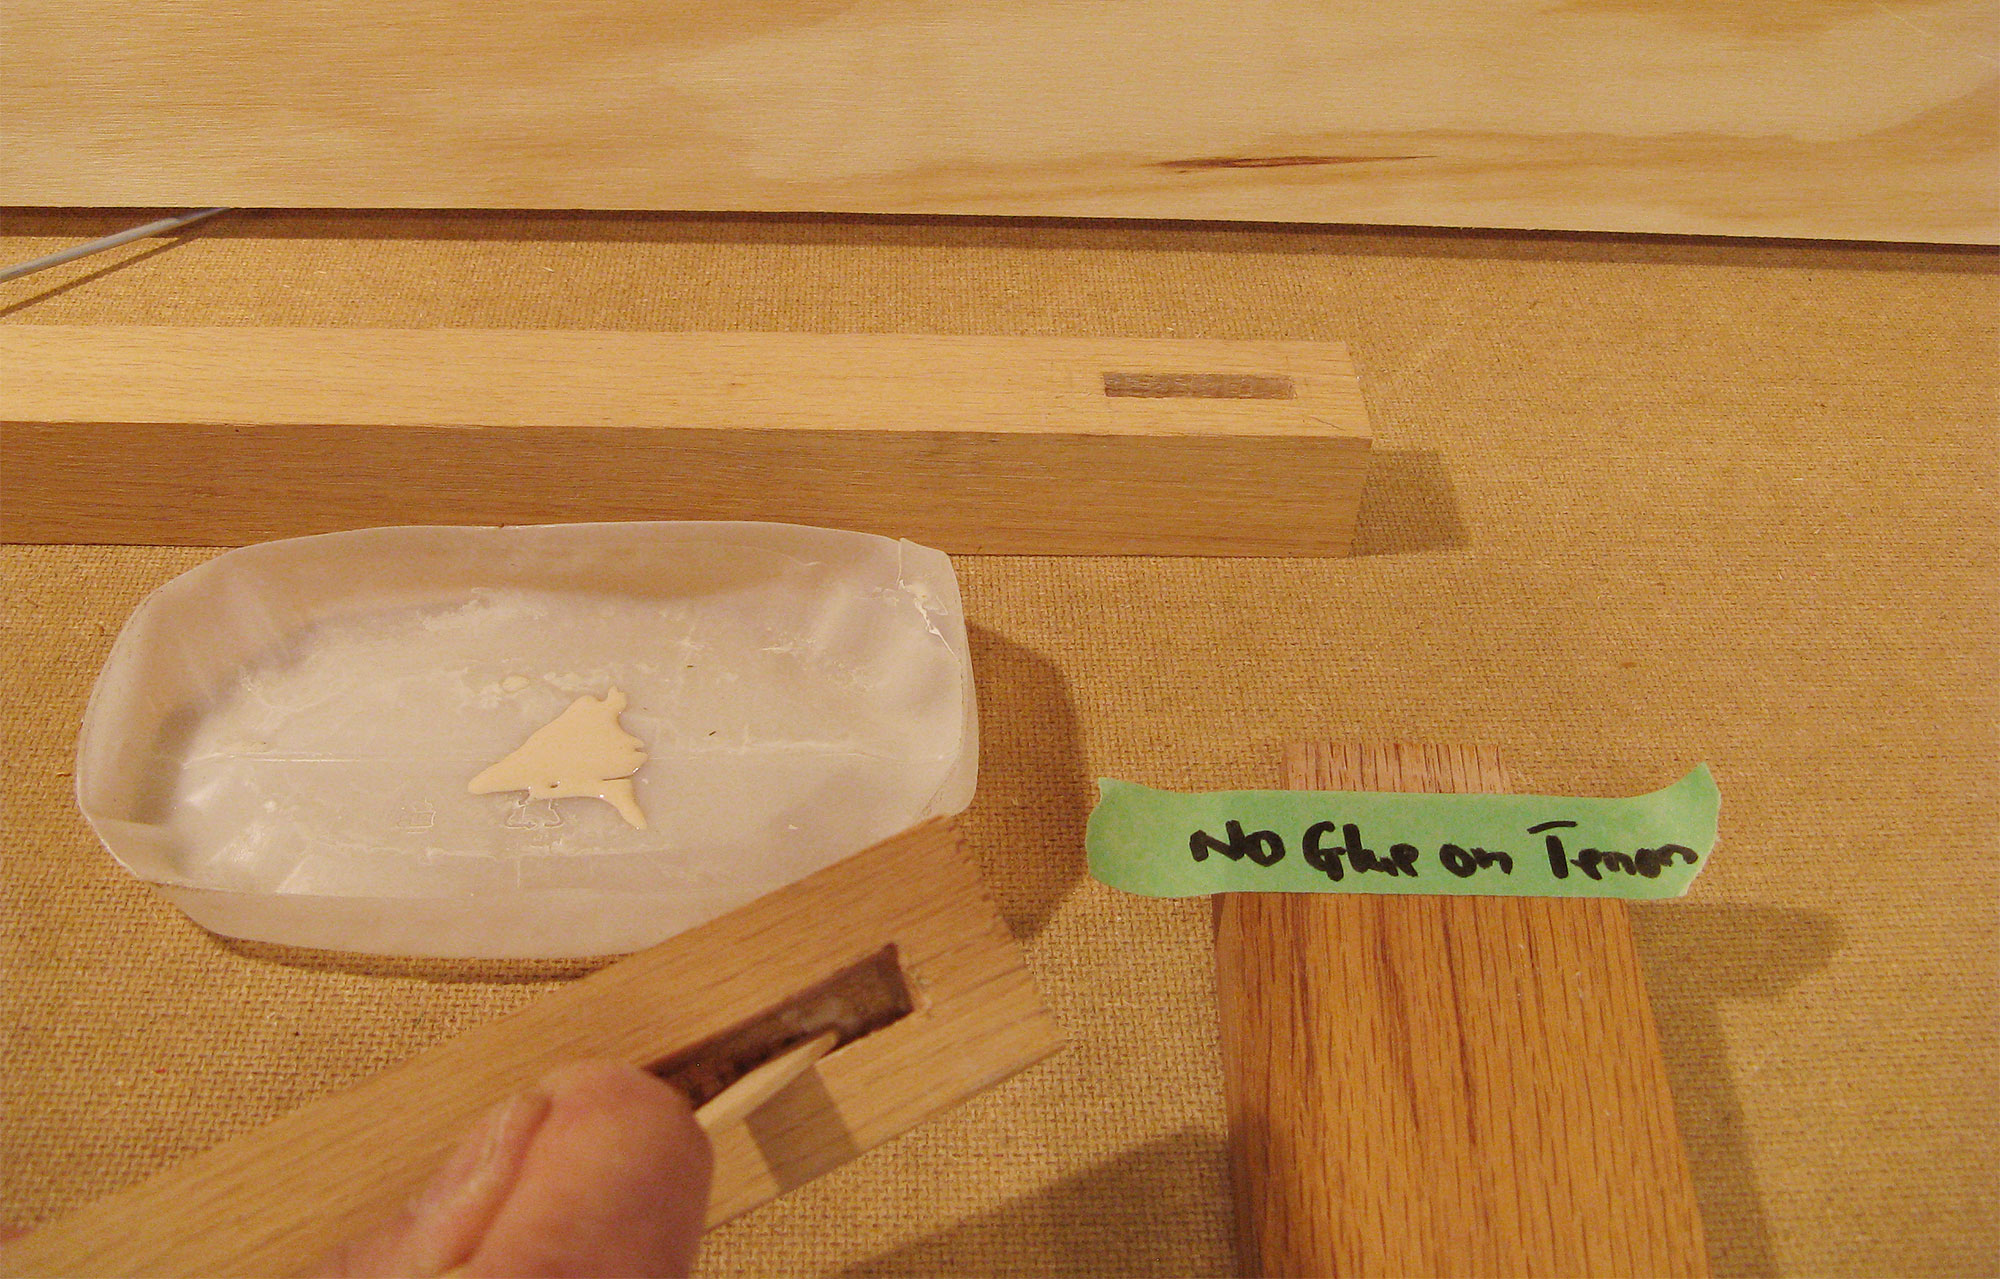 Applying glue to mortise.